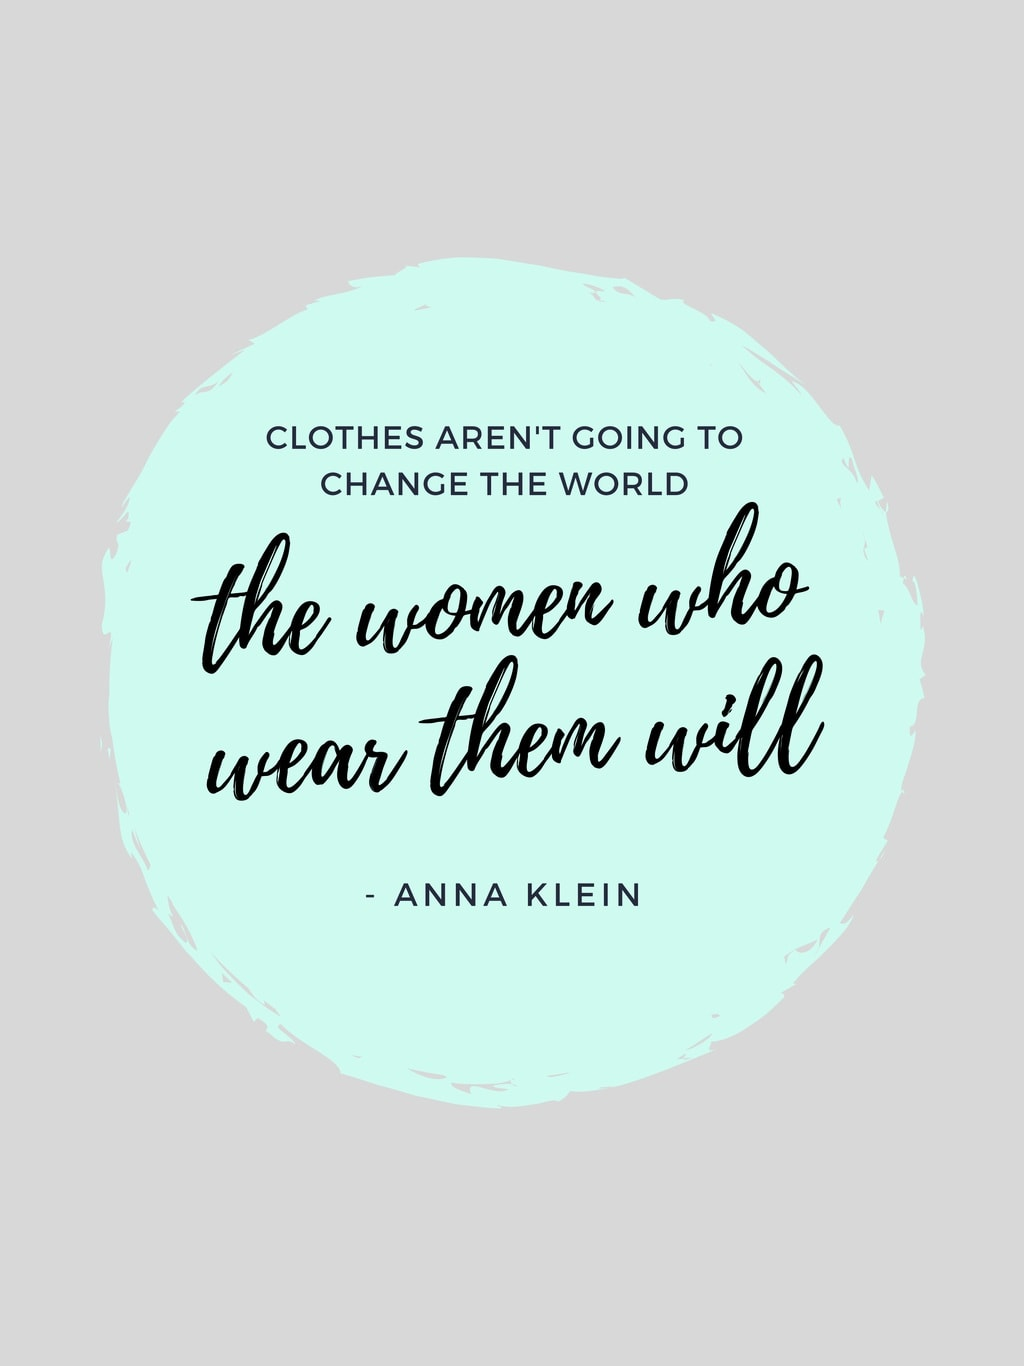 Fashion quotes: Clothes aren't going to change the world, the women who wear them will